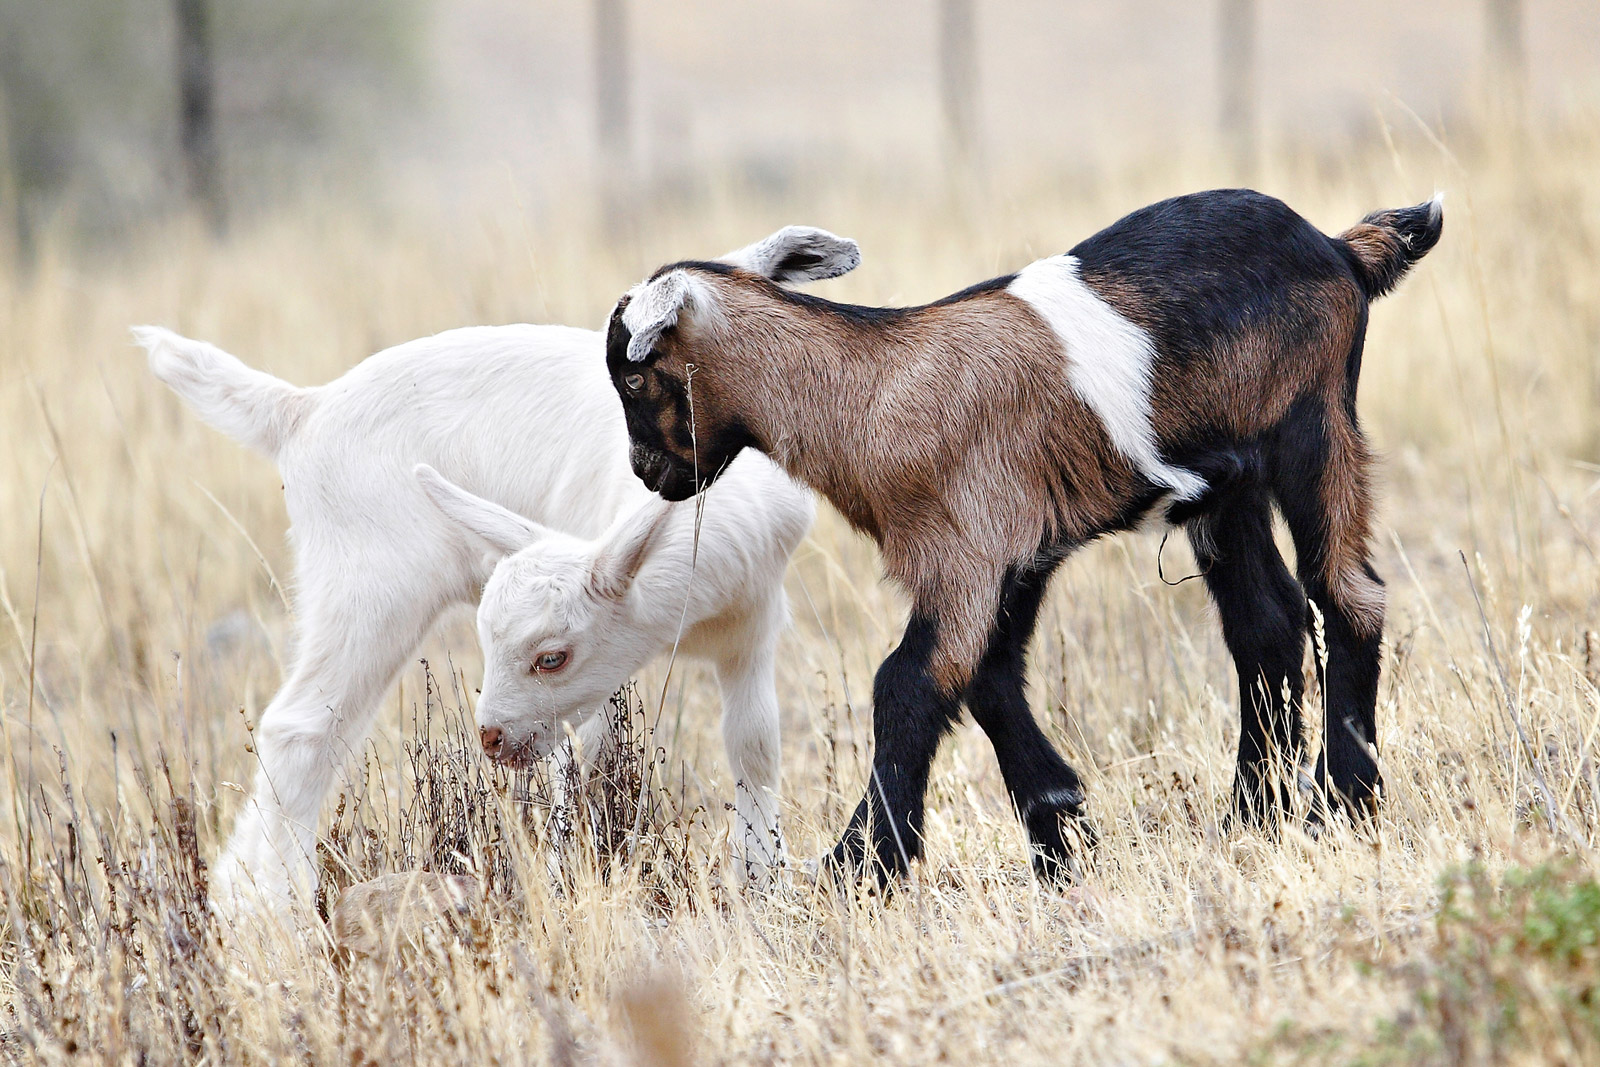 Wikipedia:Featured picture candidates/Baby goats - Wikipedia, thebaby goats